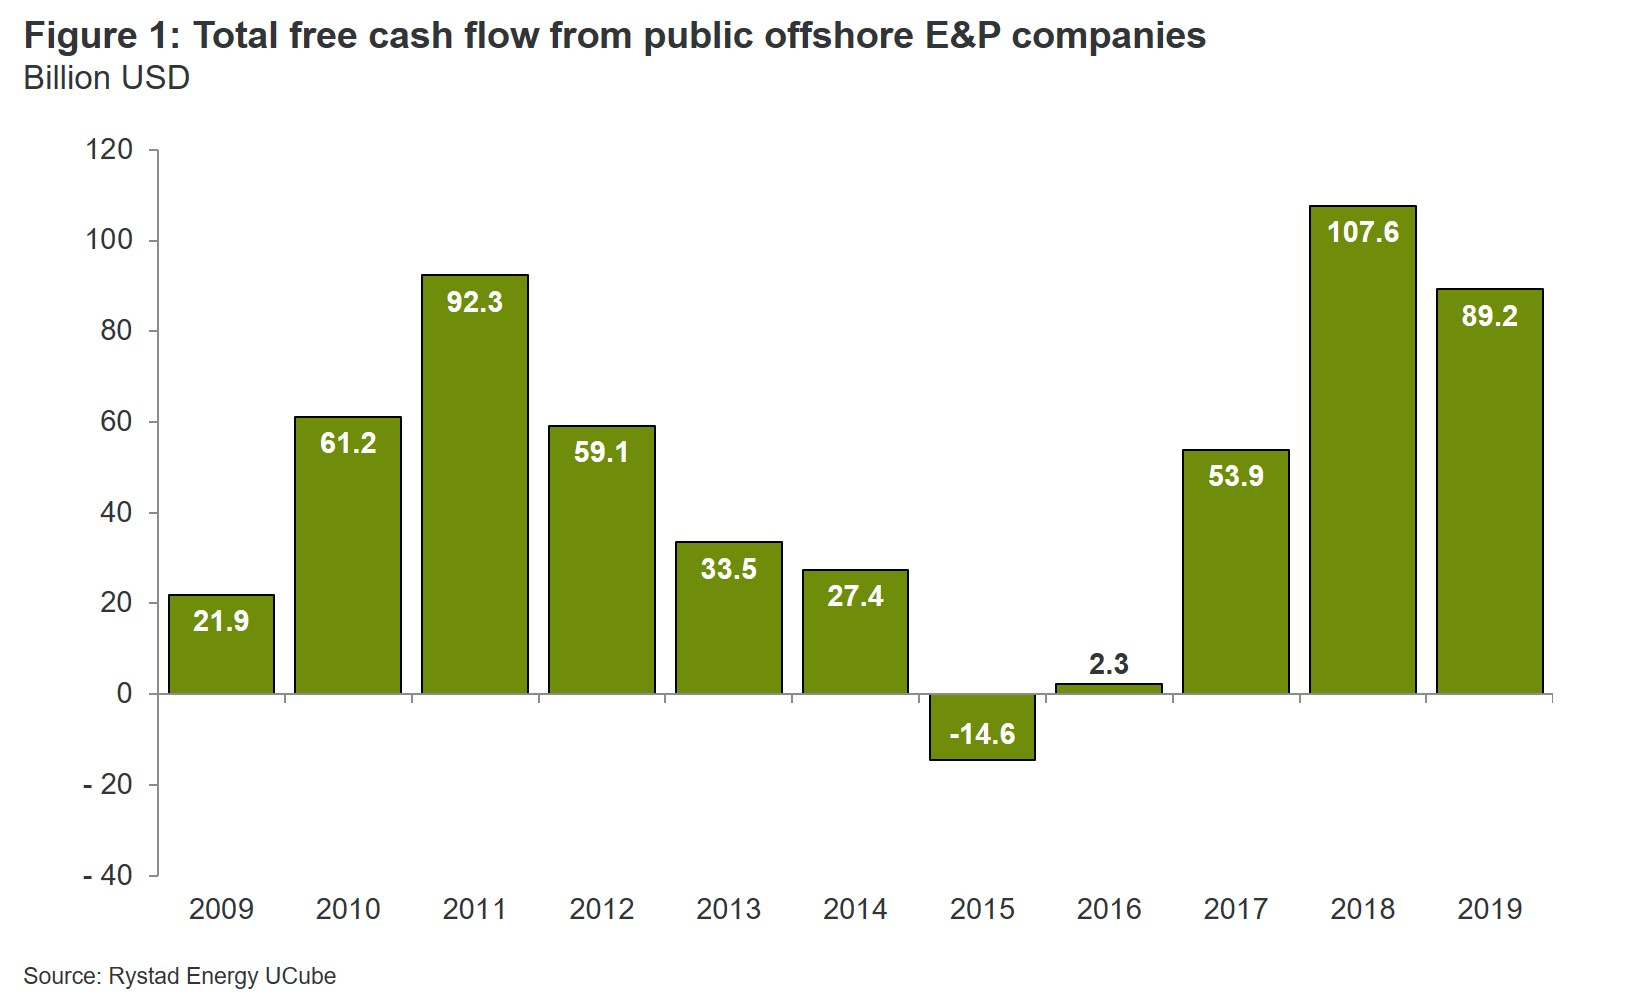 Chart showing total free cash flow from public offshore E&P companies from 2009 to 2019